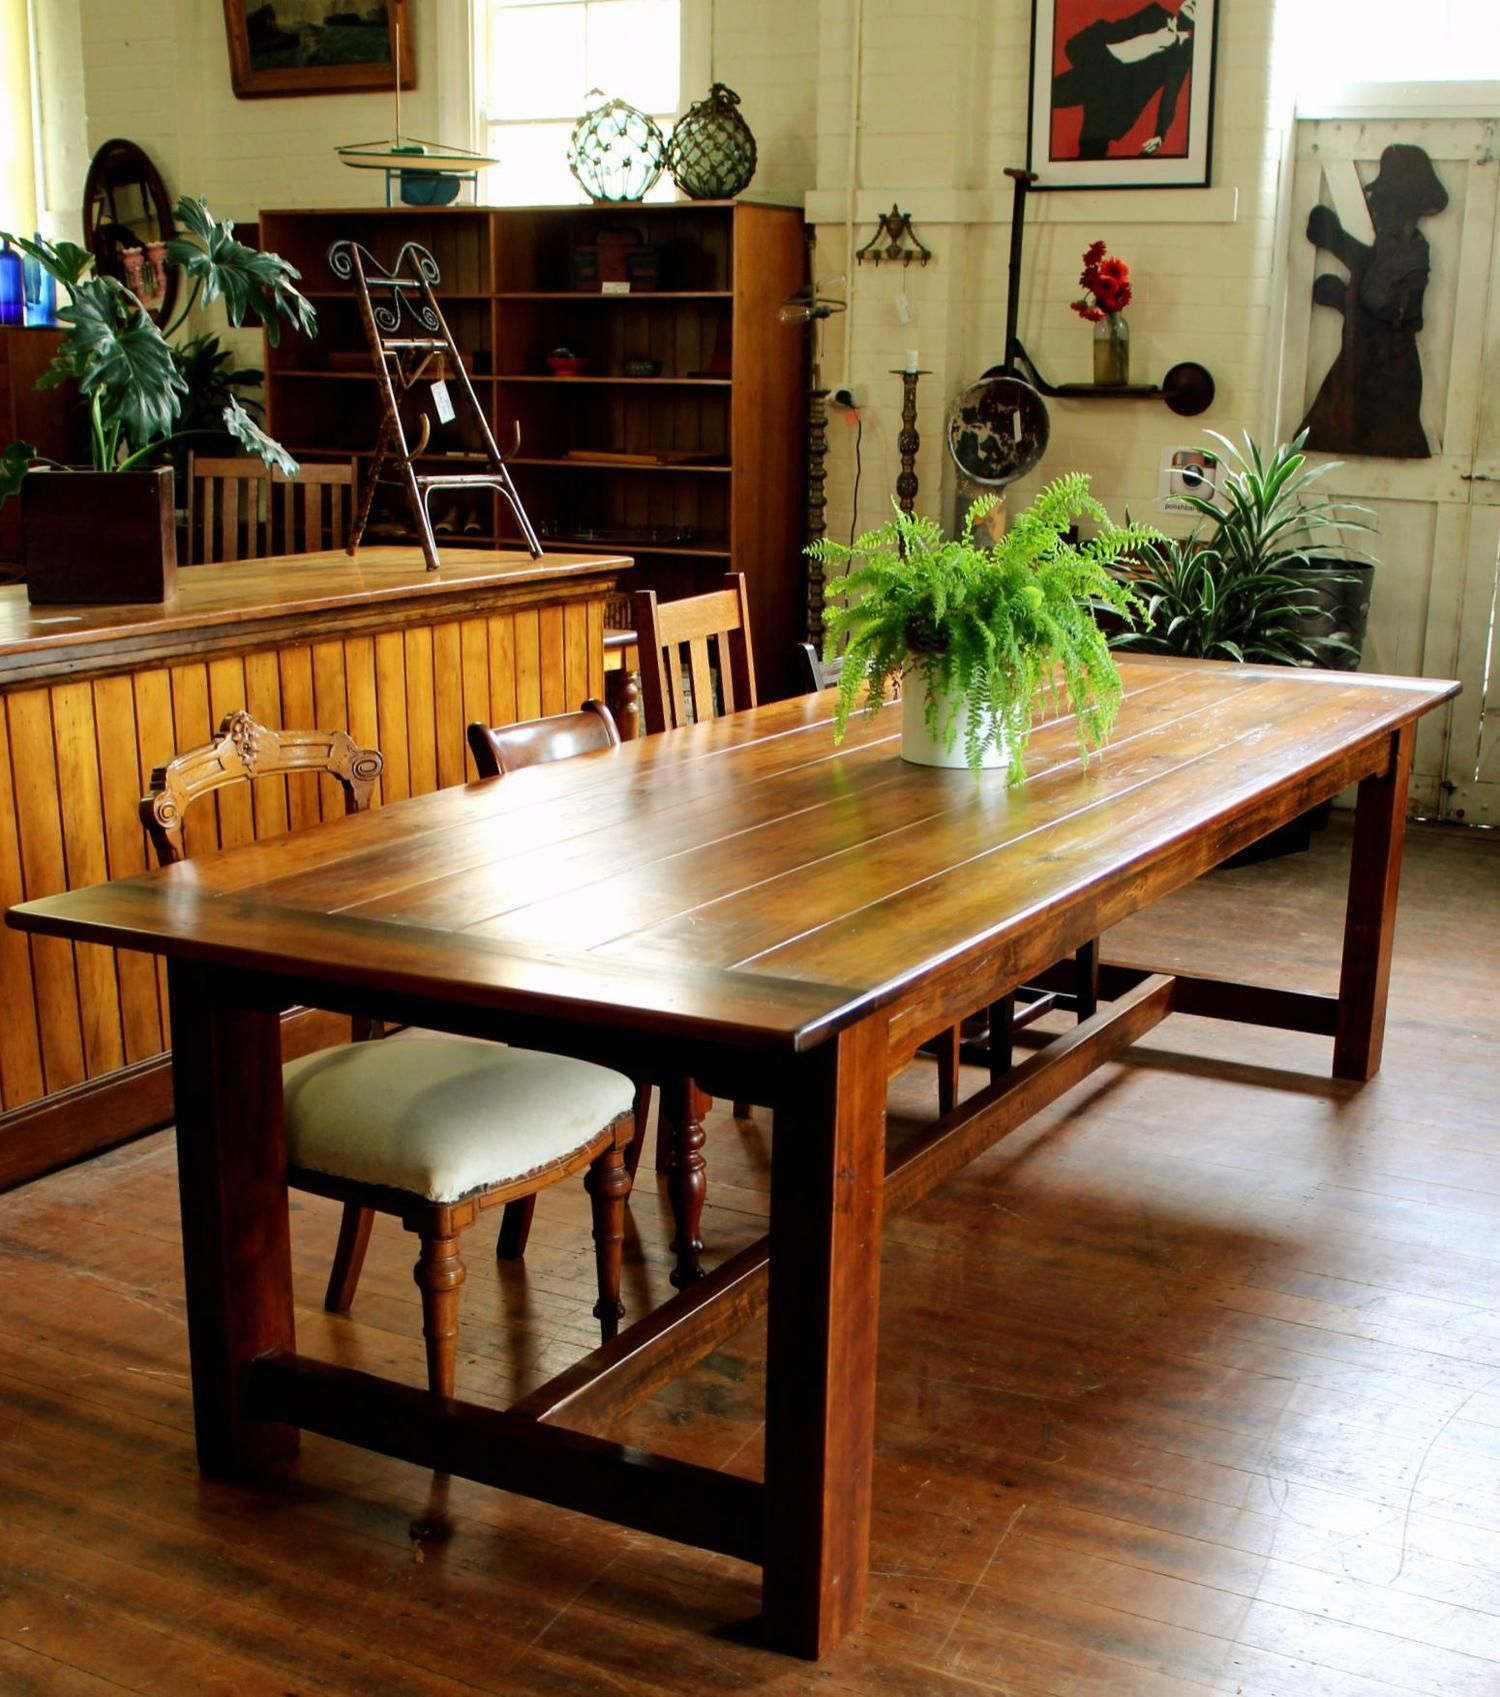 Polish Bangalow Antique Furniture For My Home